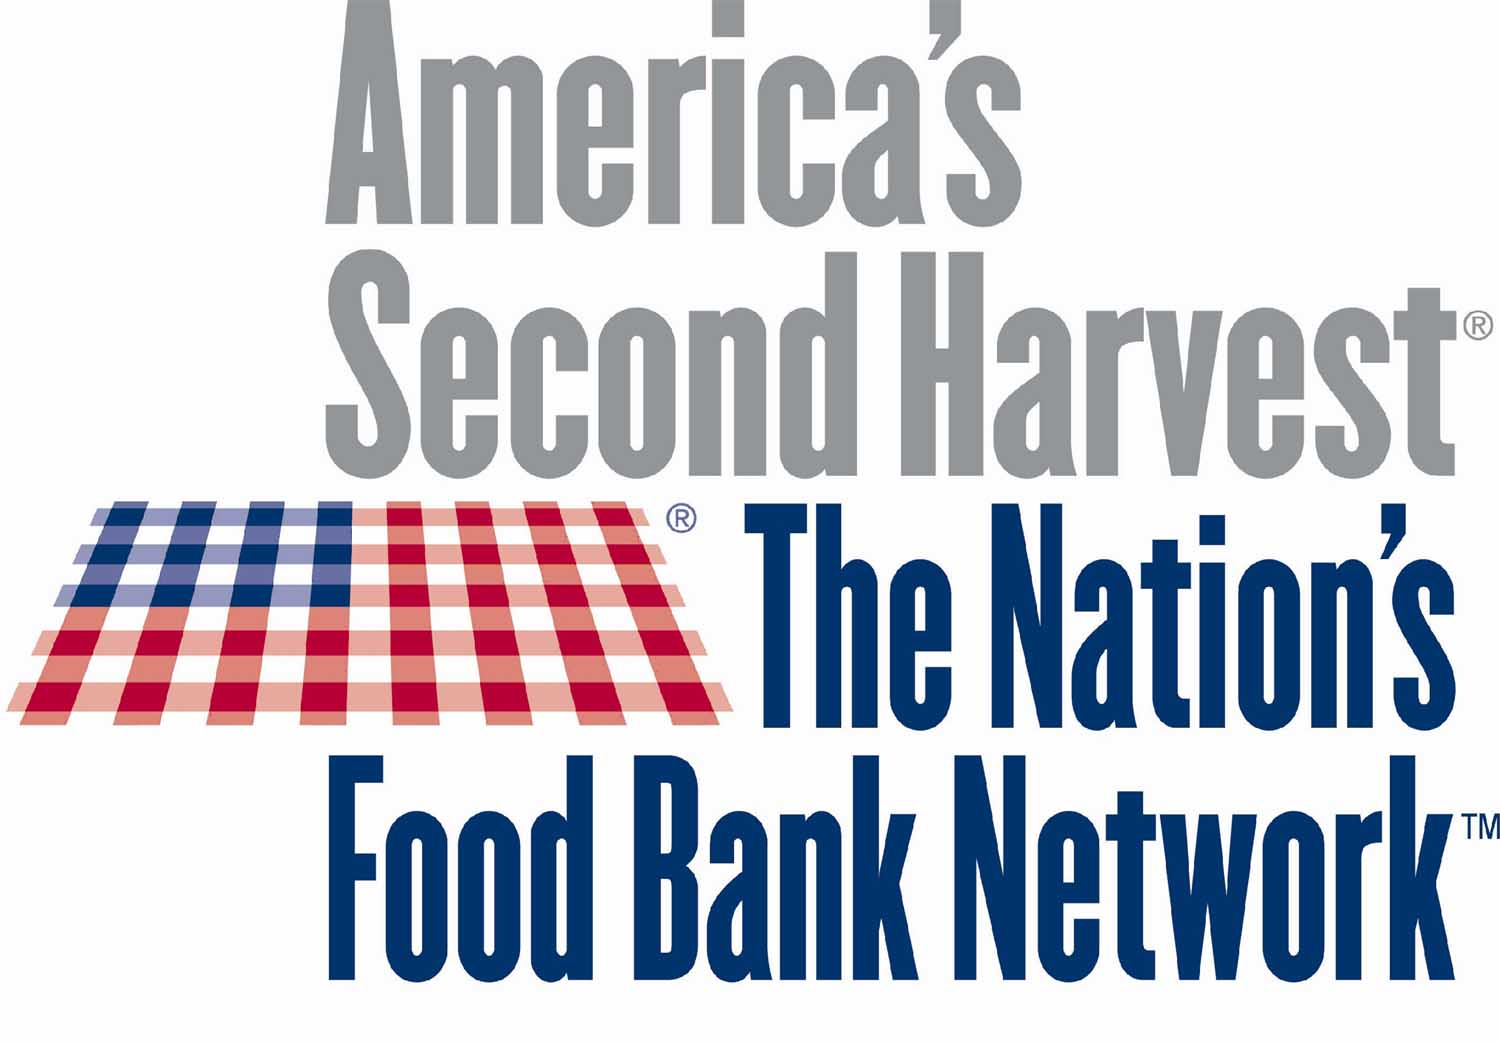 final weeks of summer food drive ForAmerica S Second Harvest